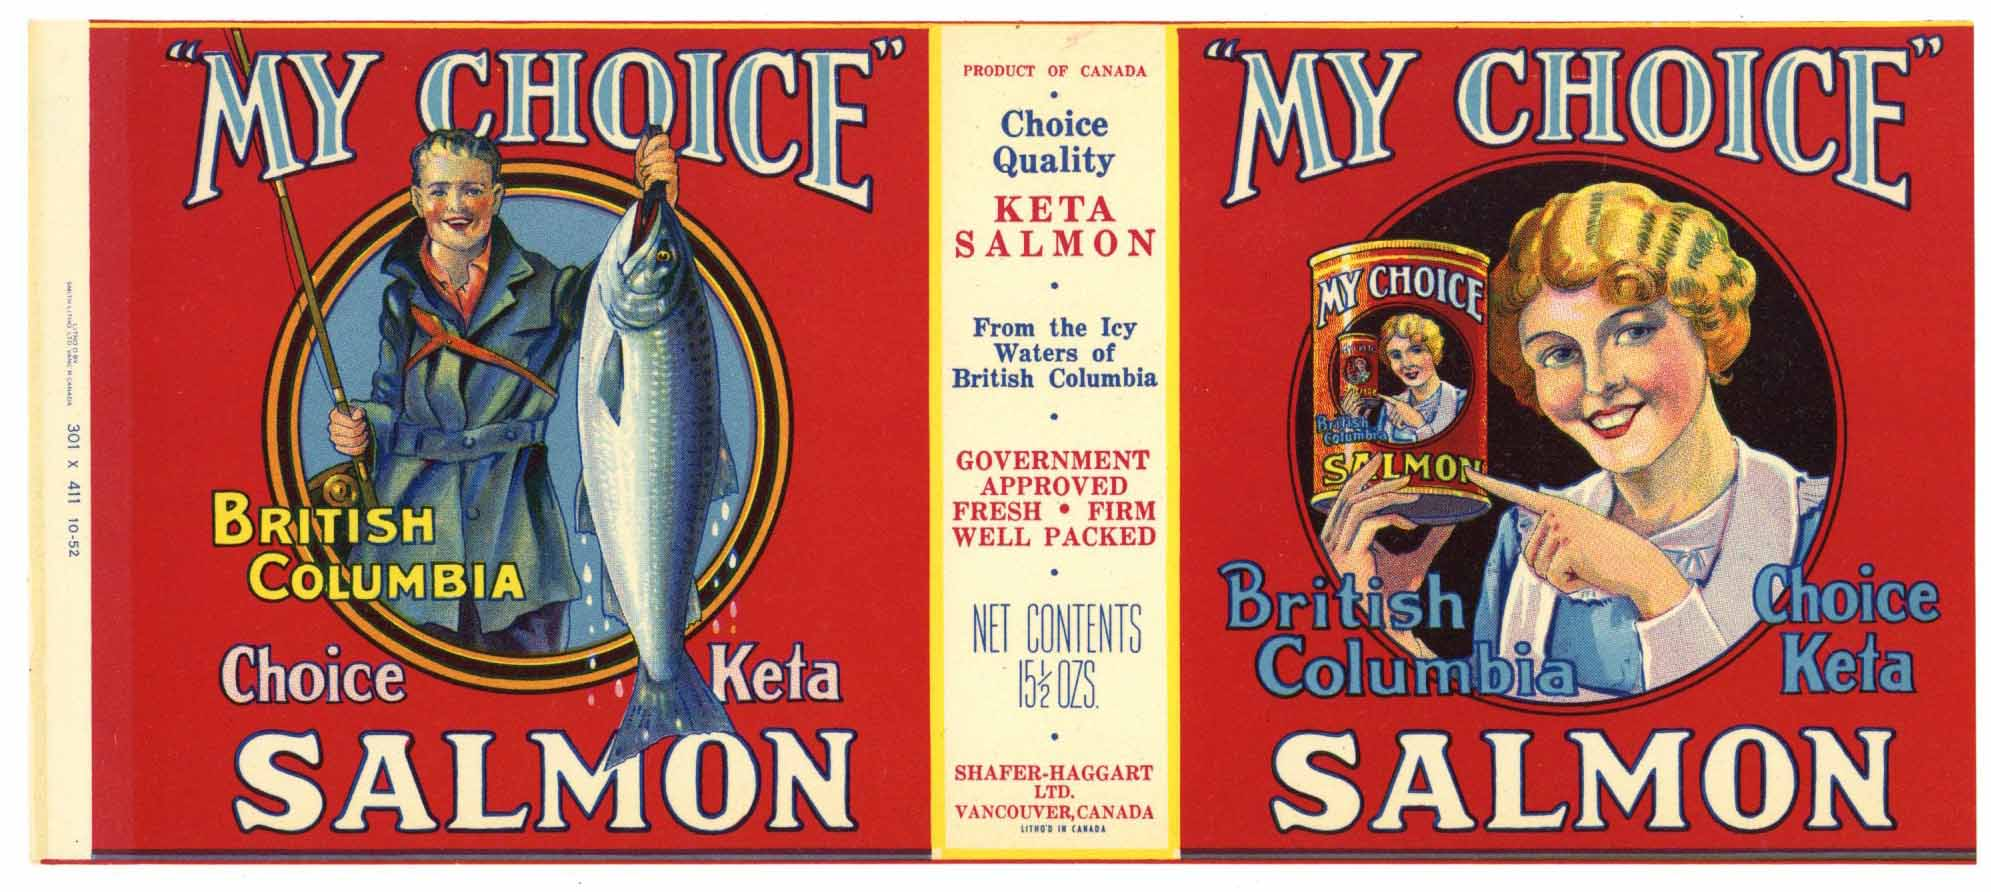 My Choice Brand Vintage Vancouver Canada Salmon Can Label, red